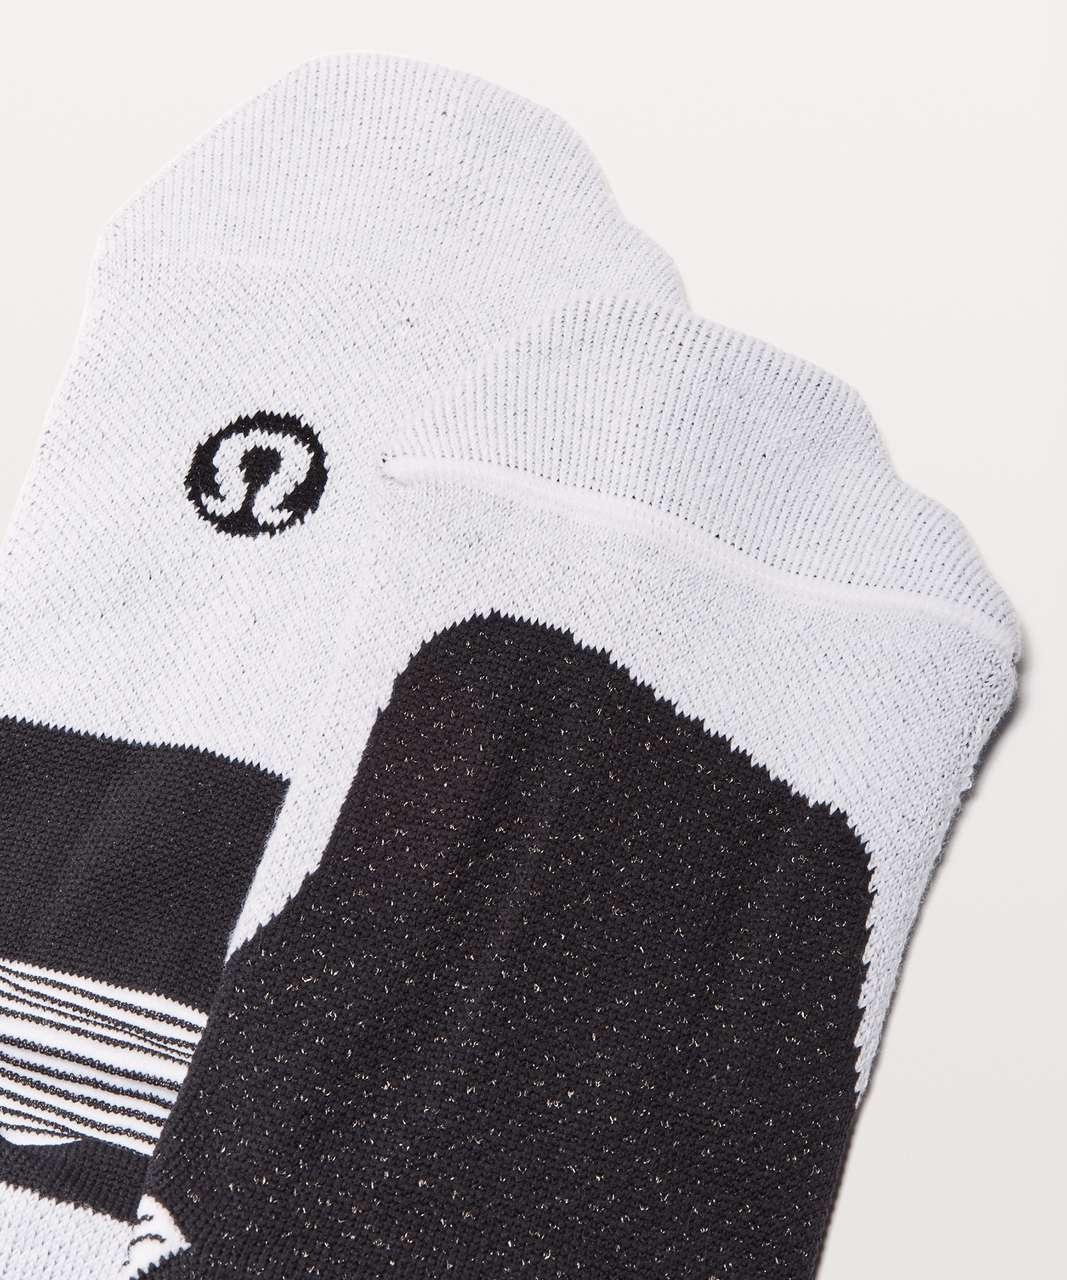 Lululemon T.H.E. Sock *Silver - Black / White